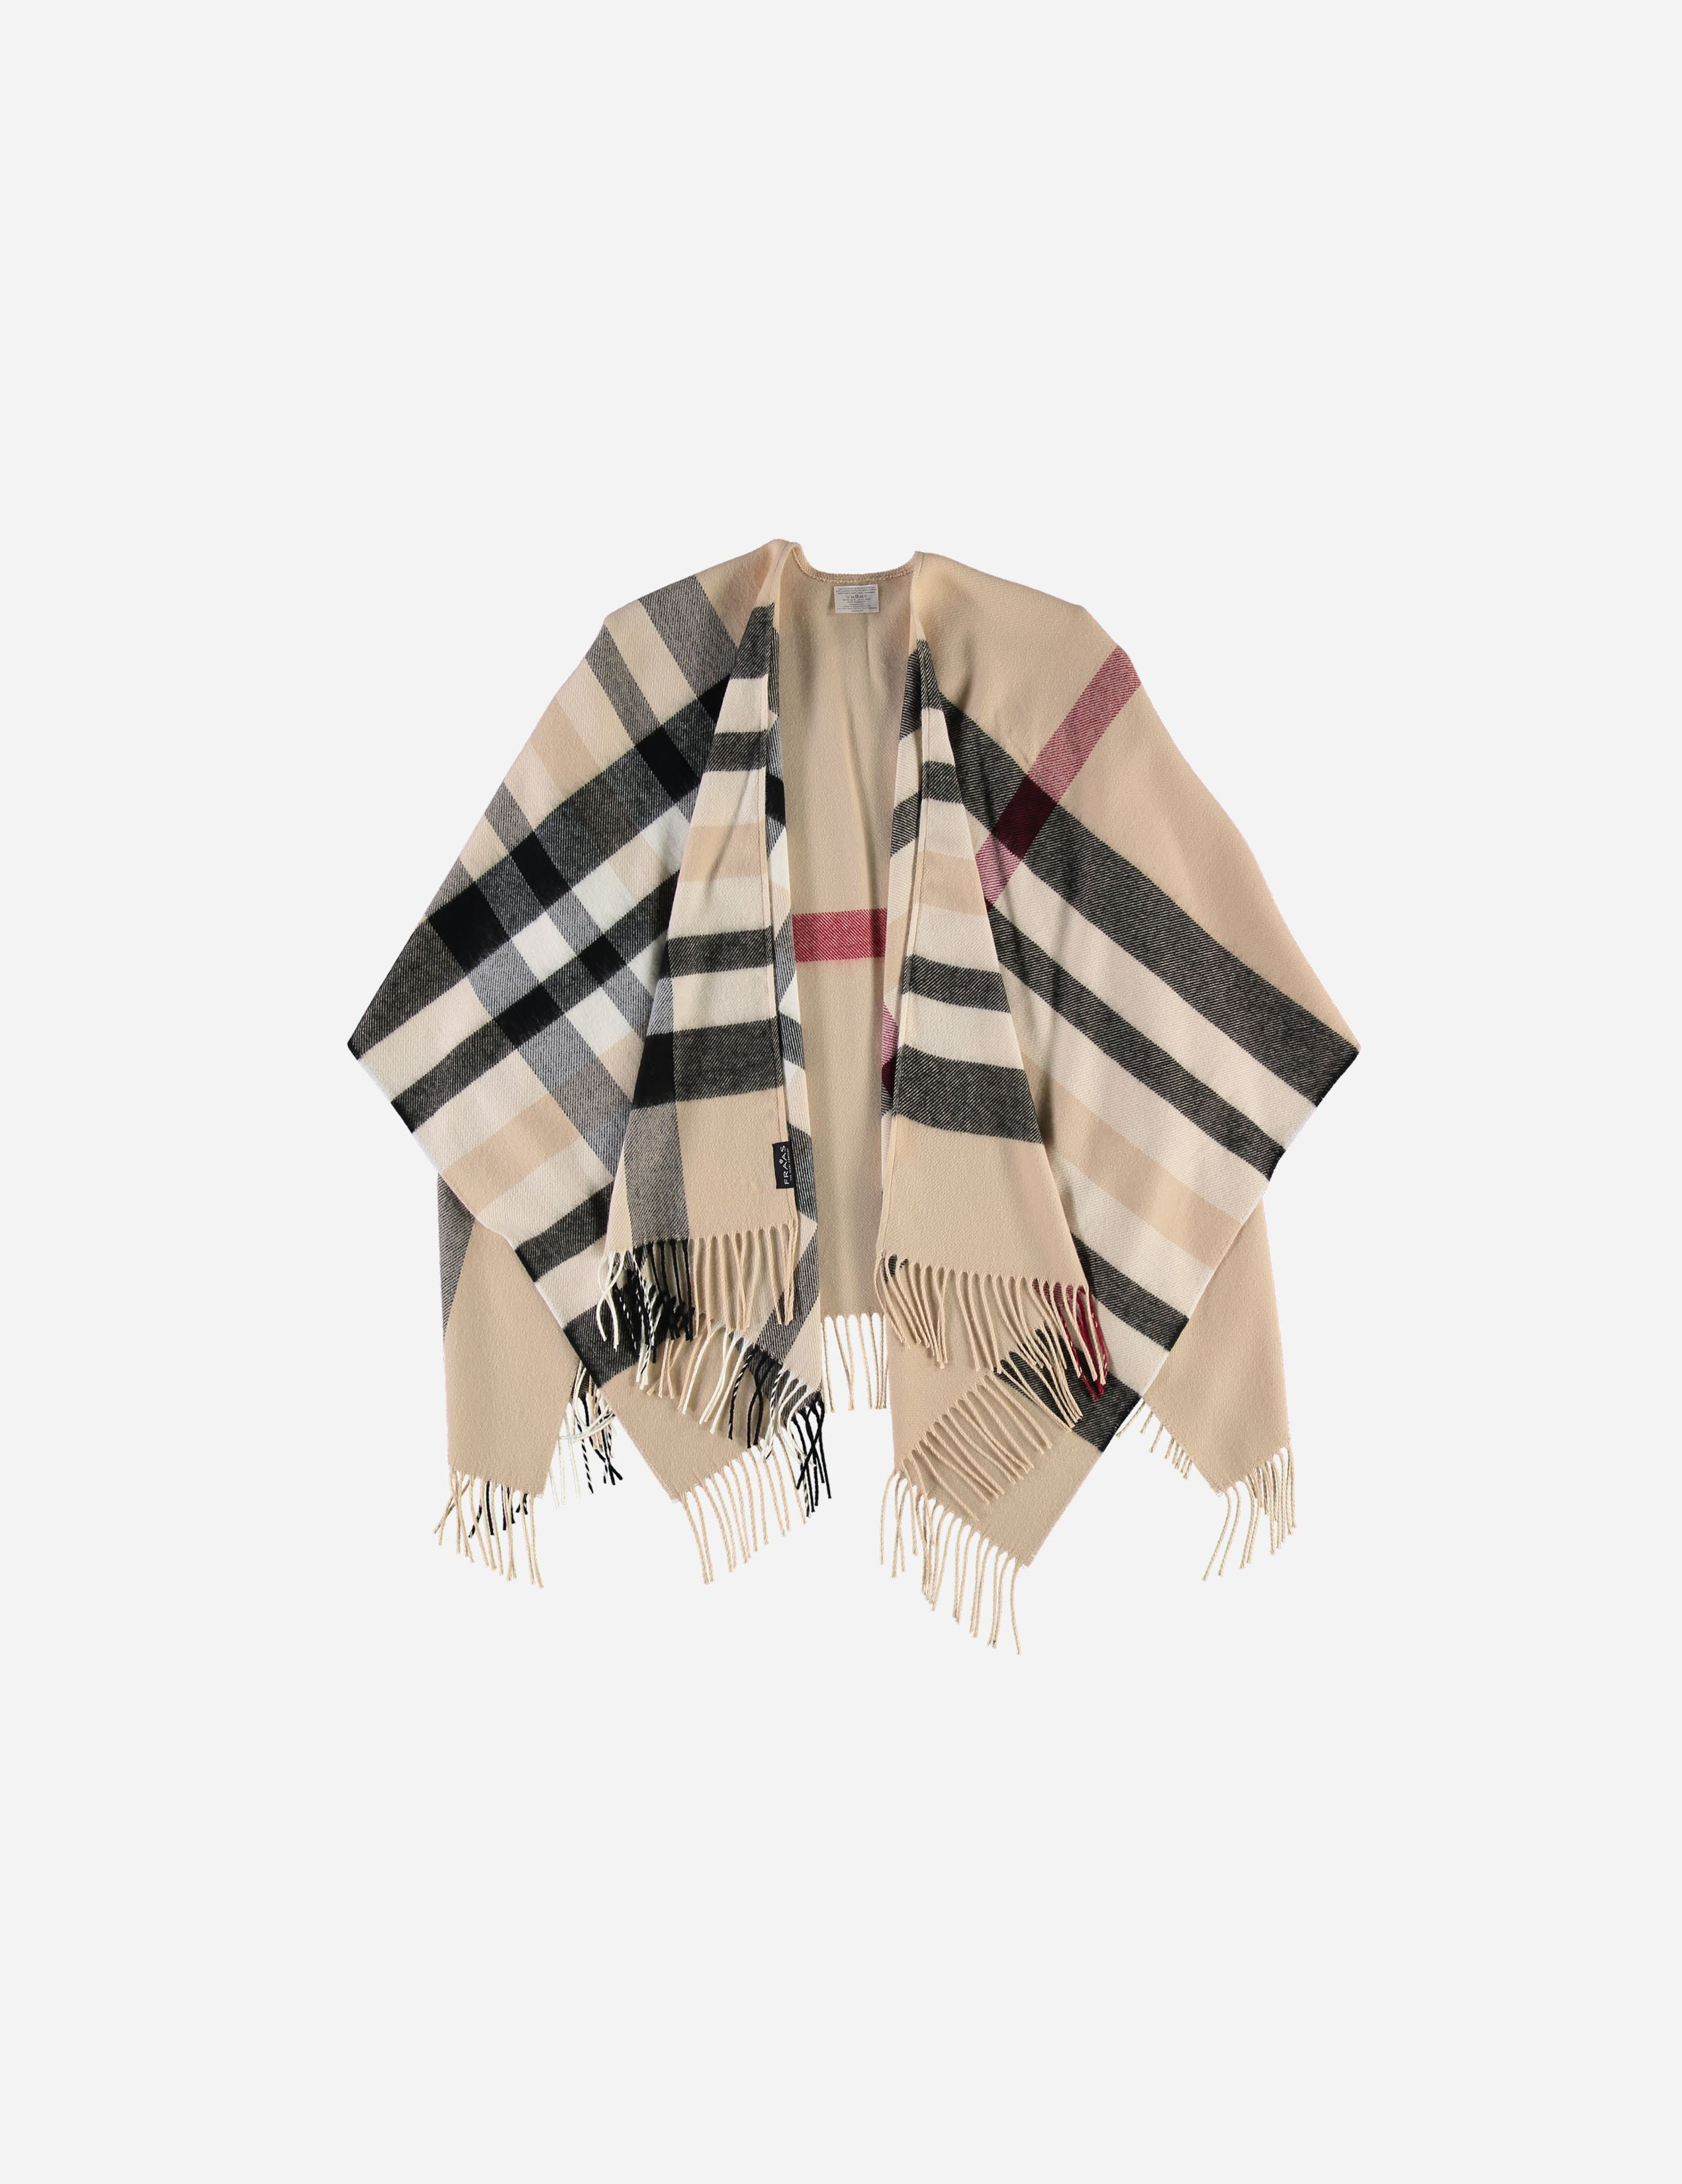 Off White Cape- $70.00 Polyester, Made in Germany 4035419157898